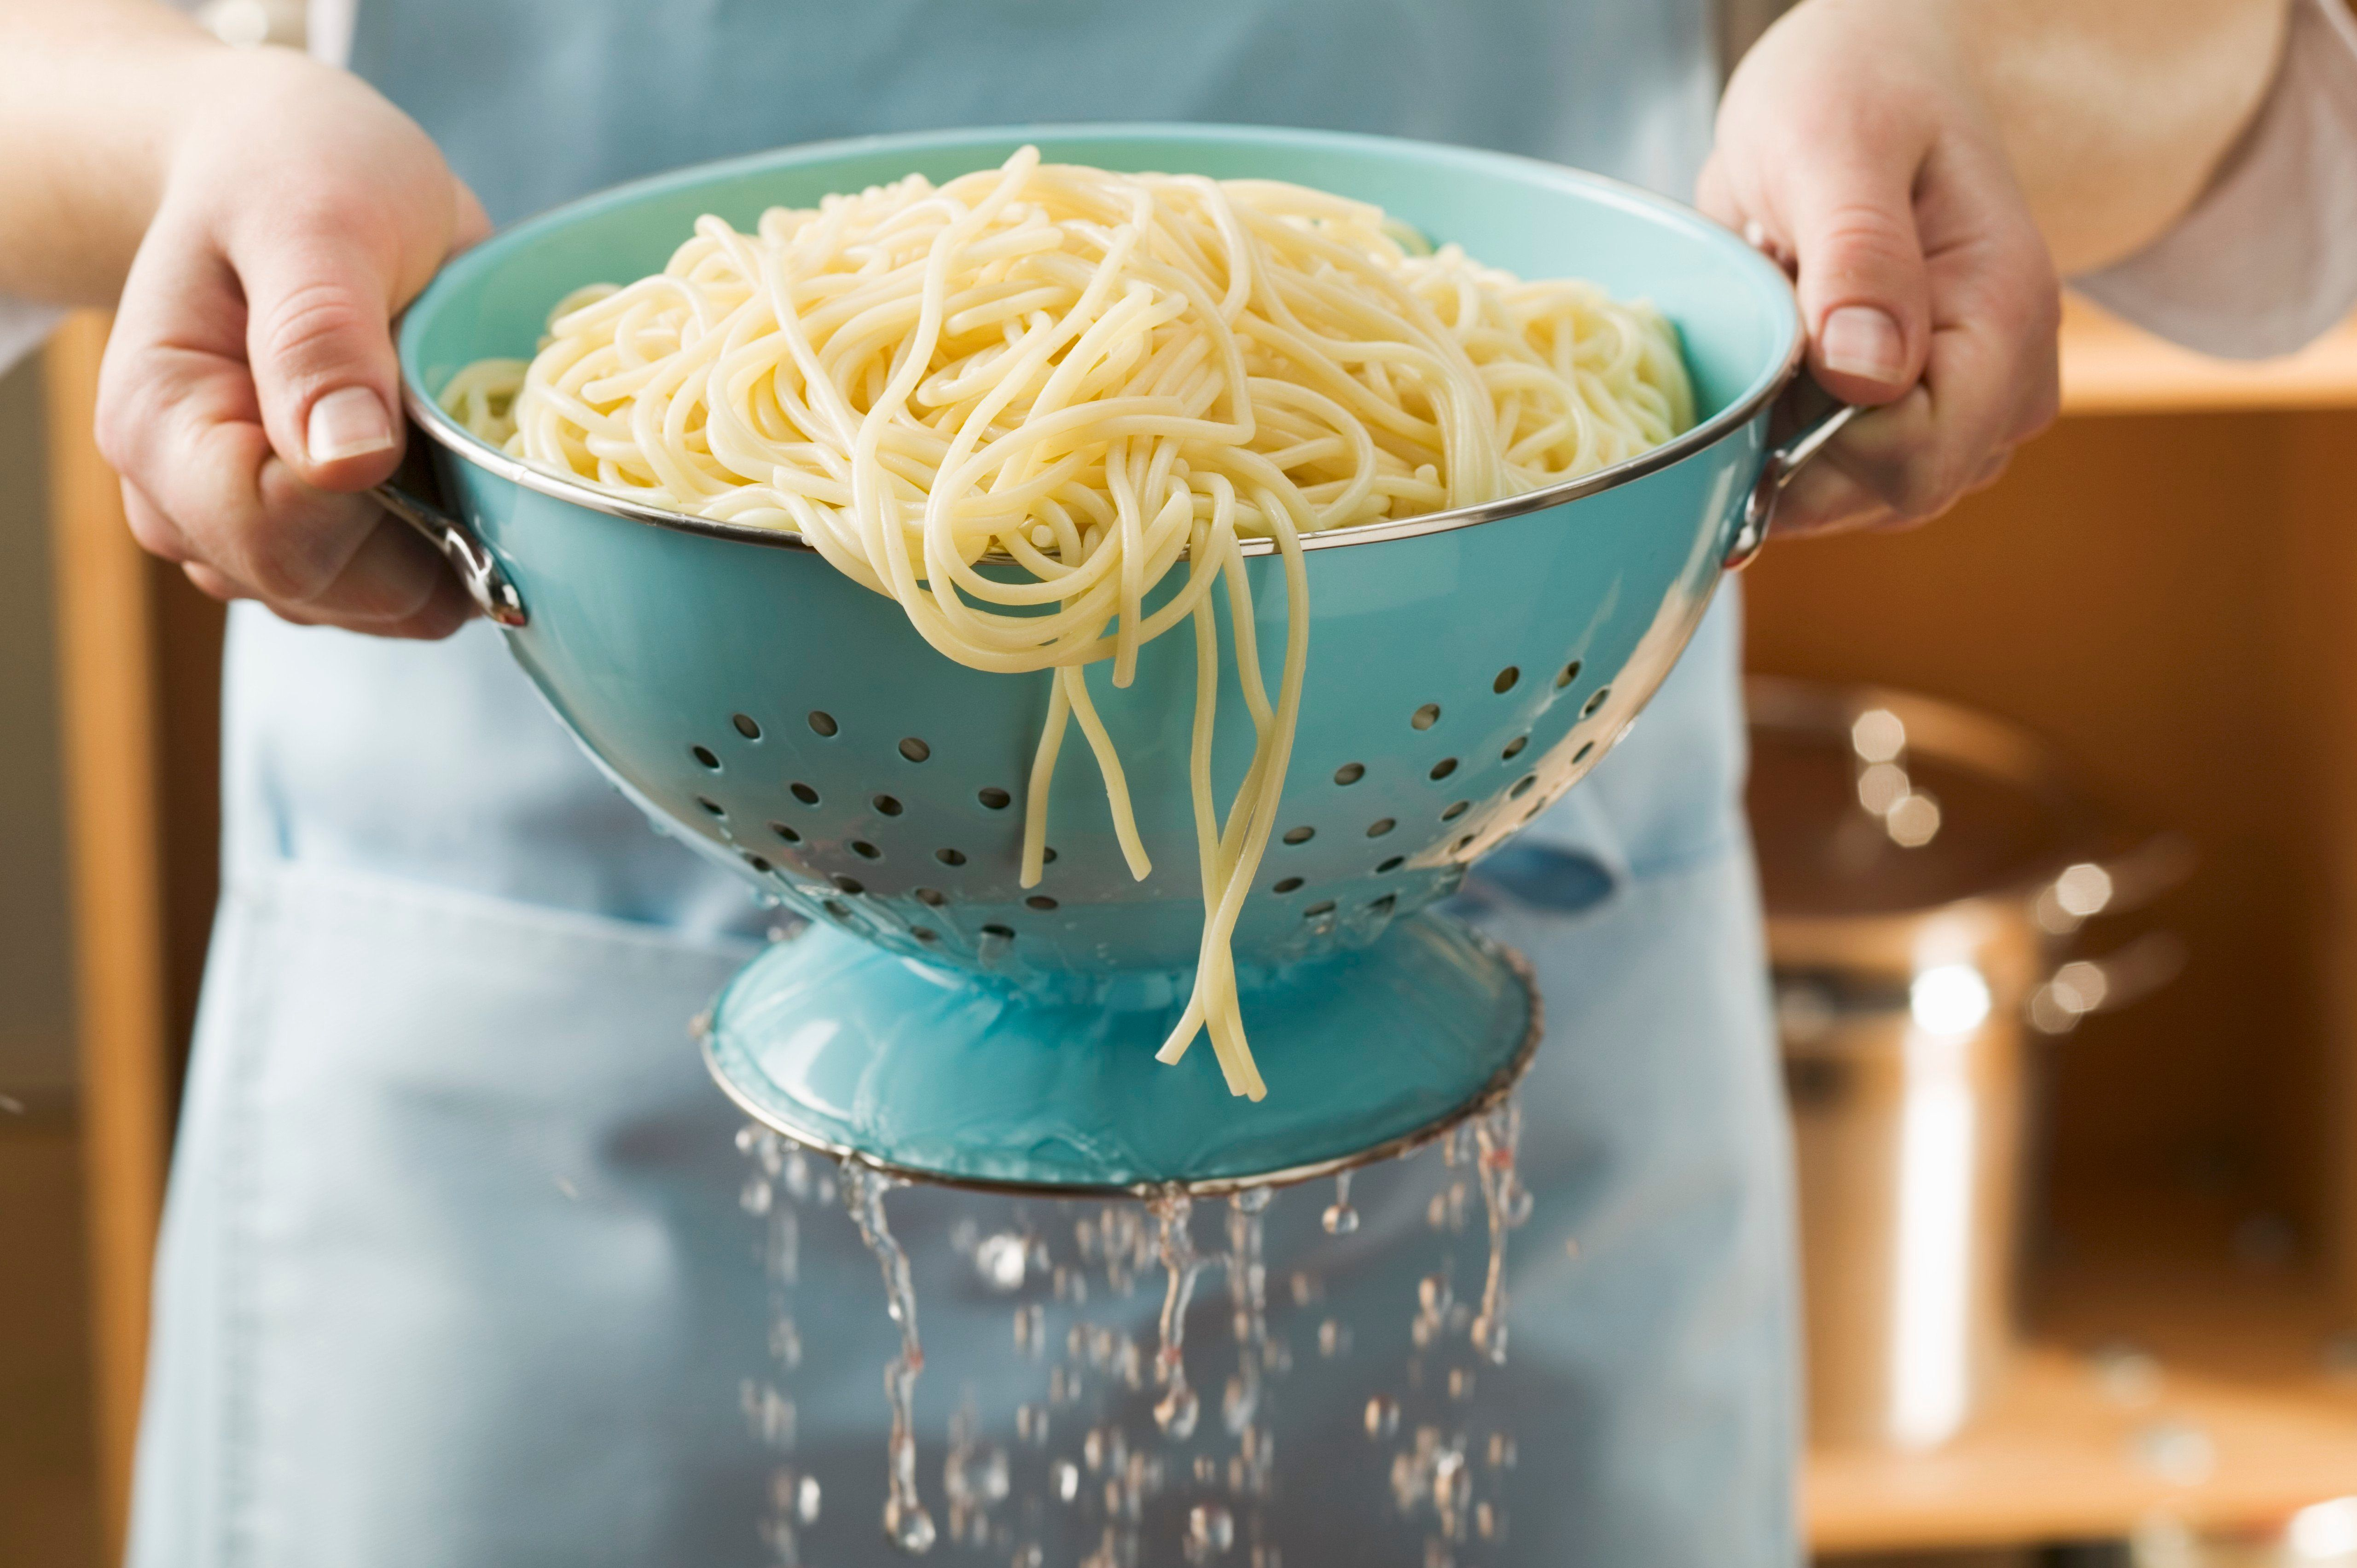 Why You Should Never, Ever Drain Your Pasta In The